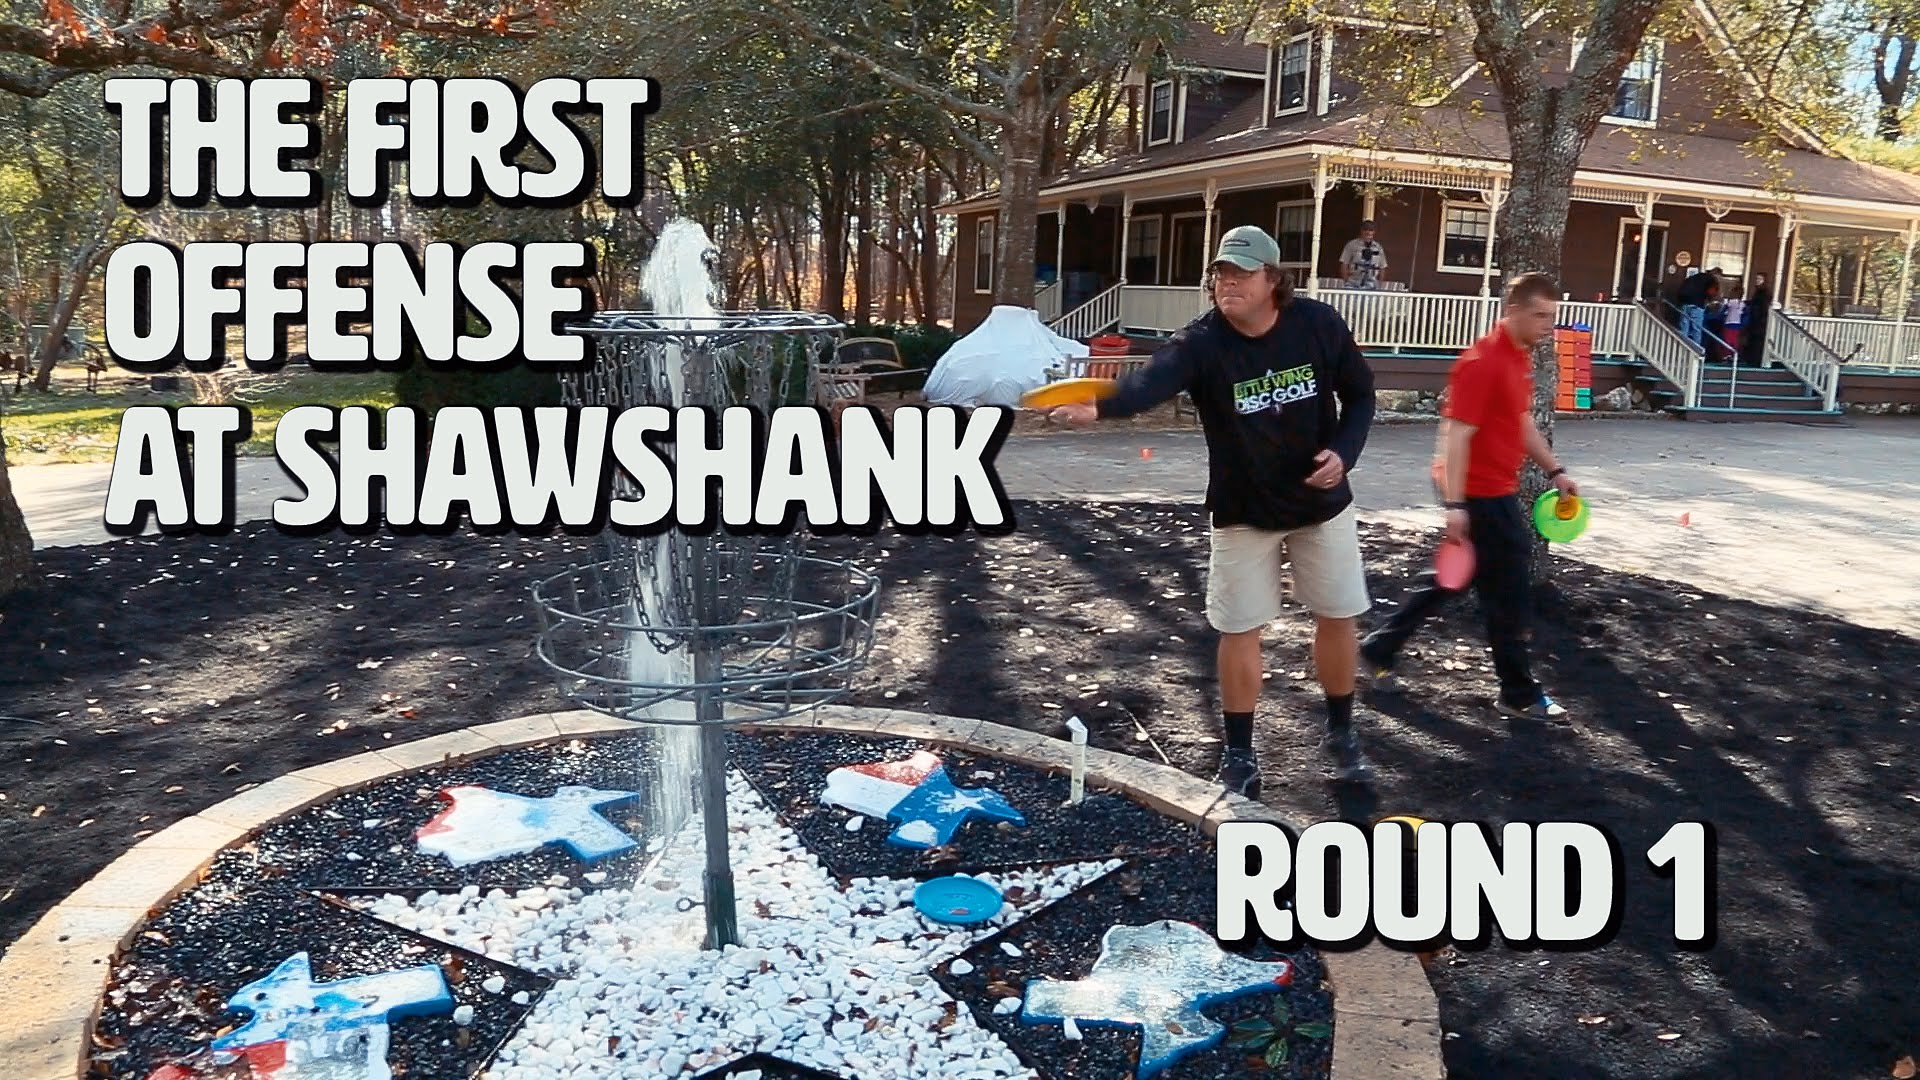 First Offense at Shawshank Round 1